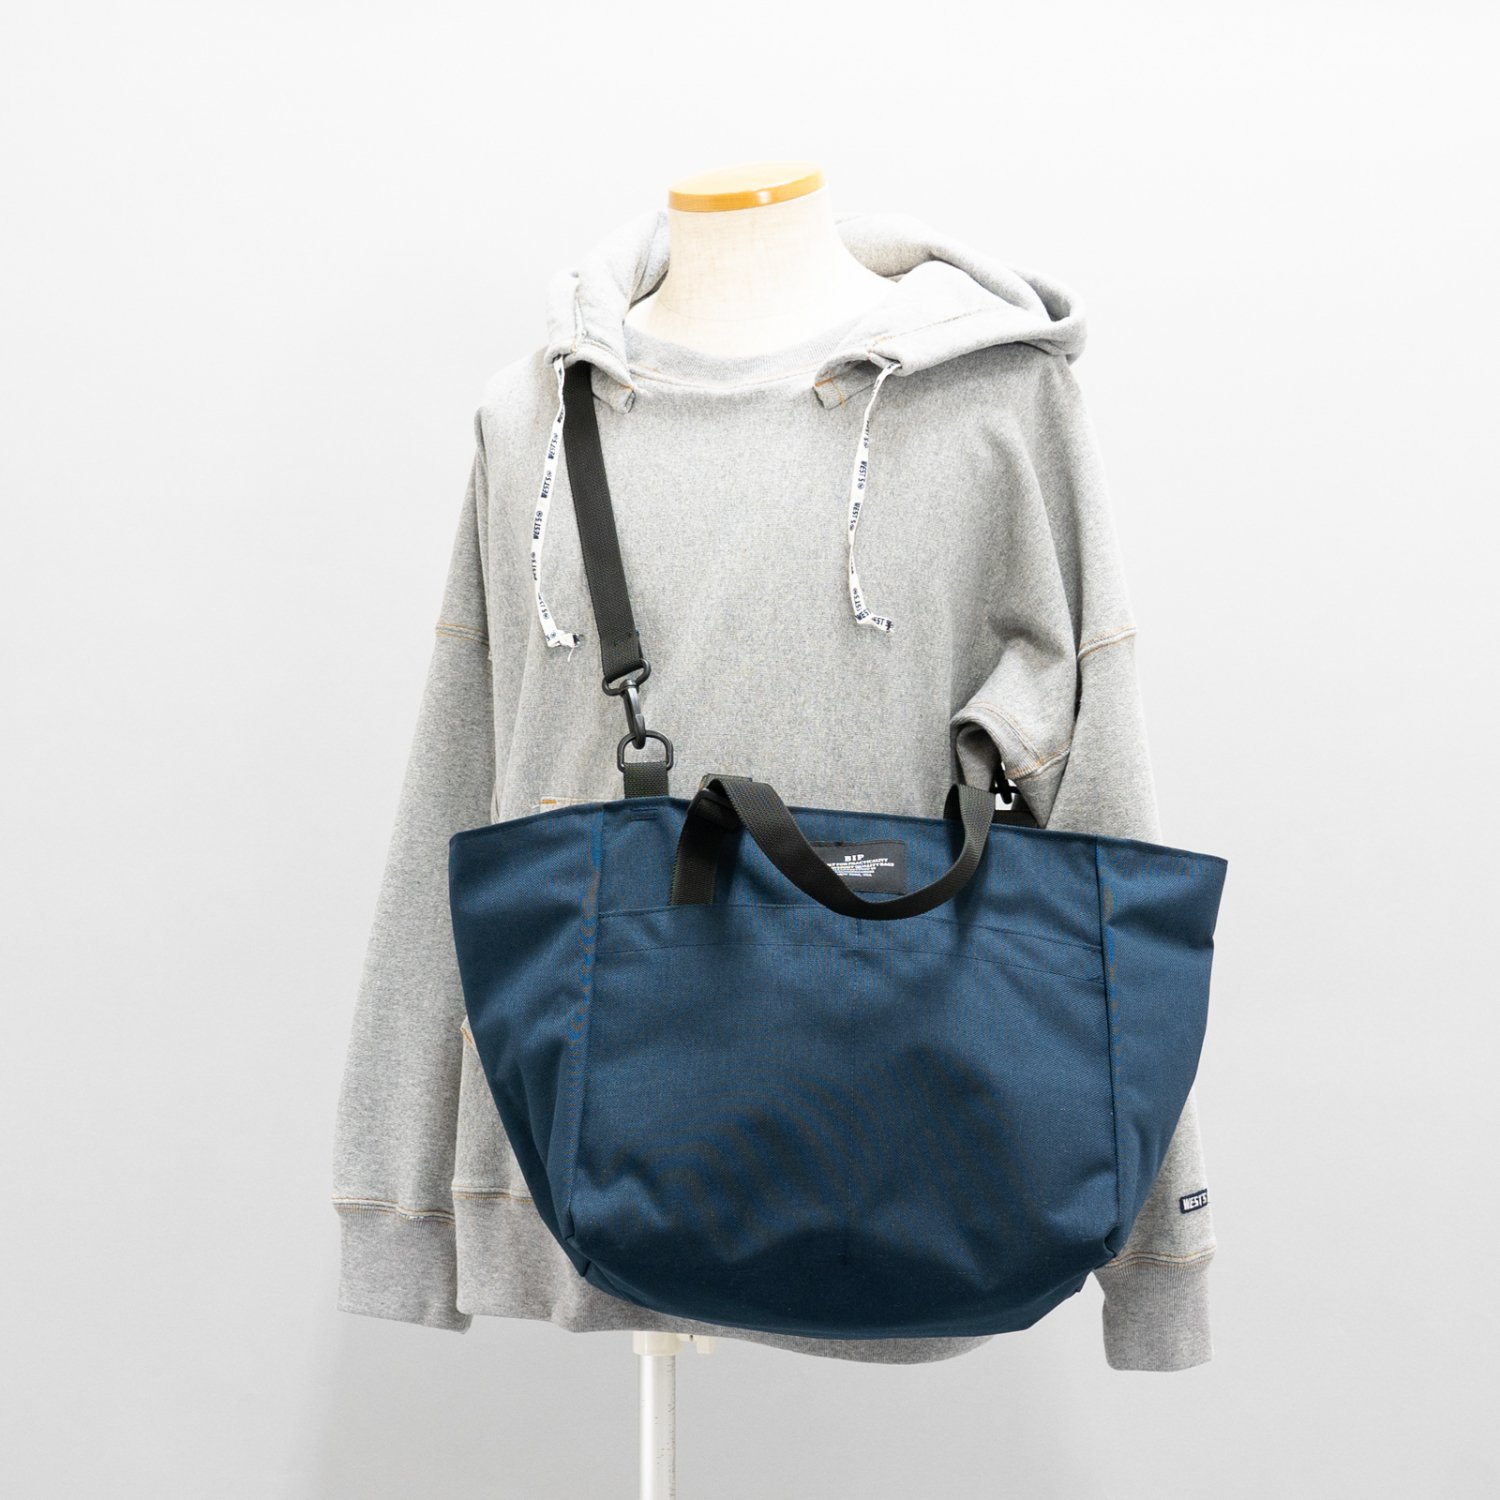 BAGSINPROGRESS * CARRY-ON SHOULDER TOTE NYLON CANVAS(2色展開)